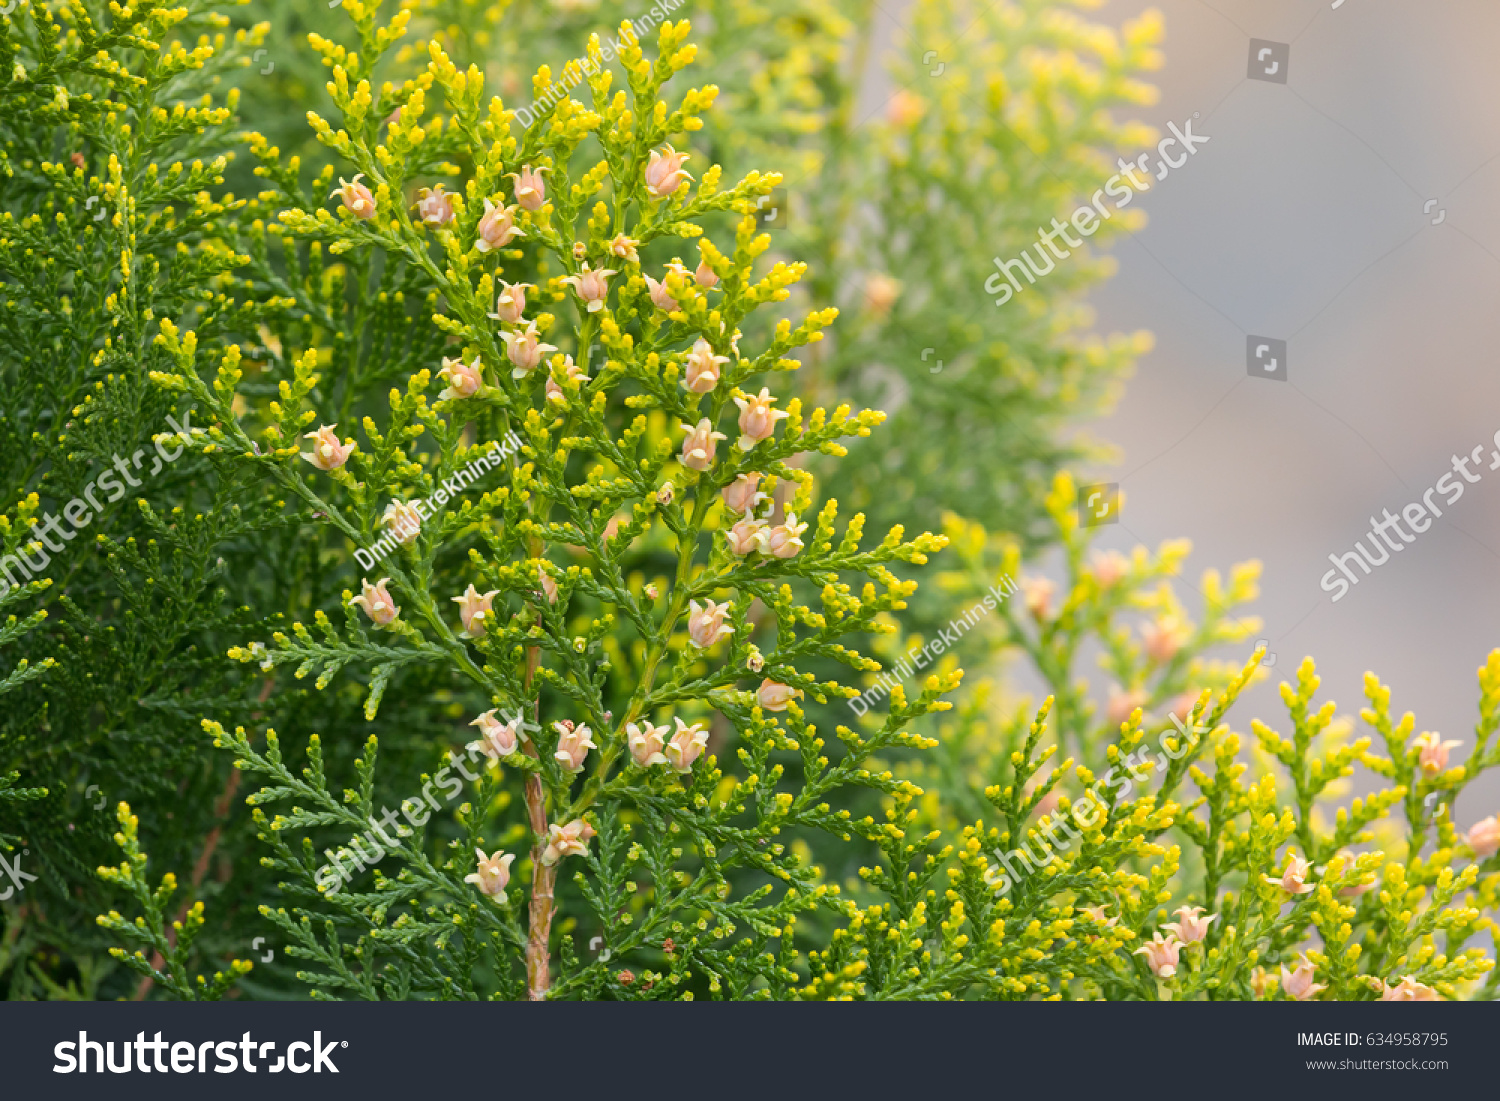 Bright yellow pink flowers pine trees stock photo royalty free bright yellow and pink flowers of pine trees in sunny day mightylinksfo